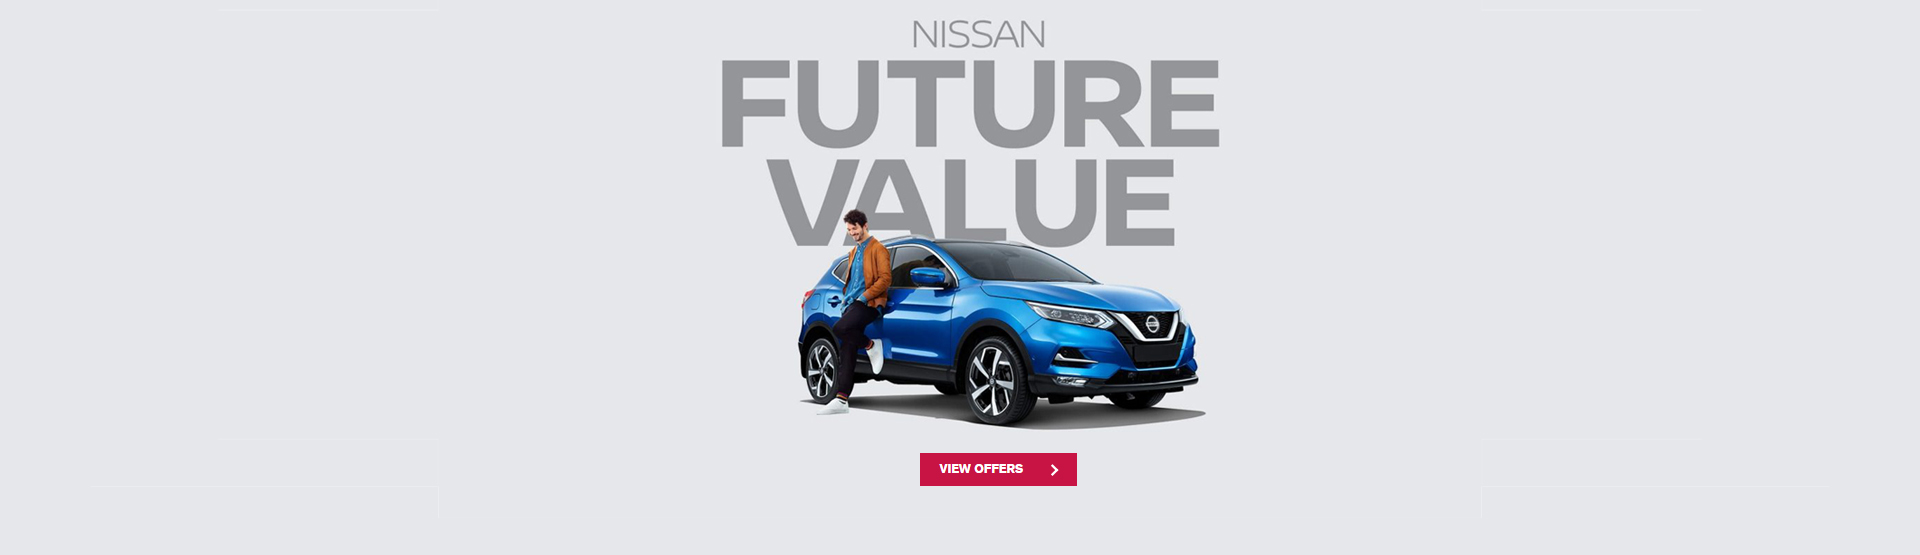 Cricks Nissan Offers